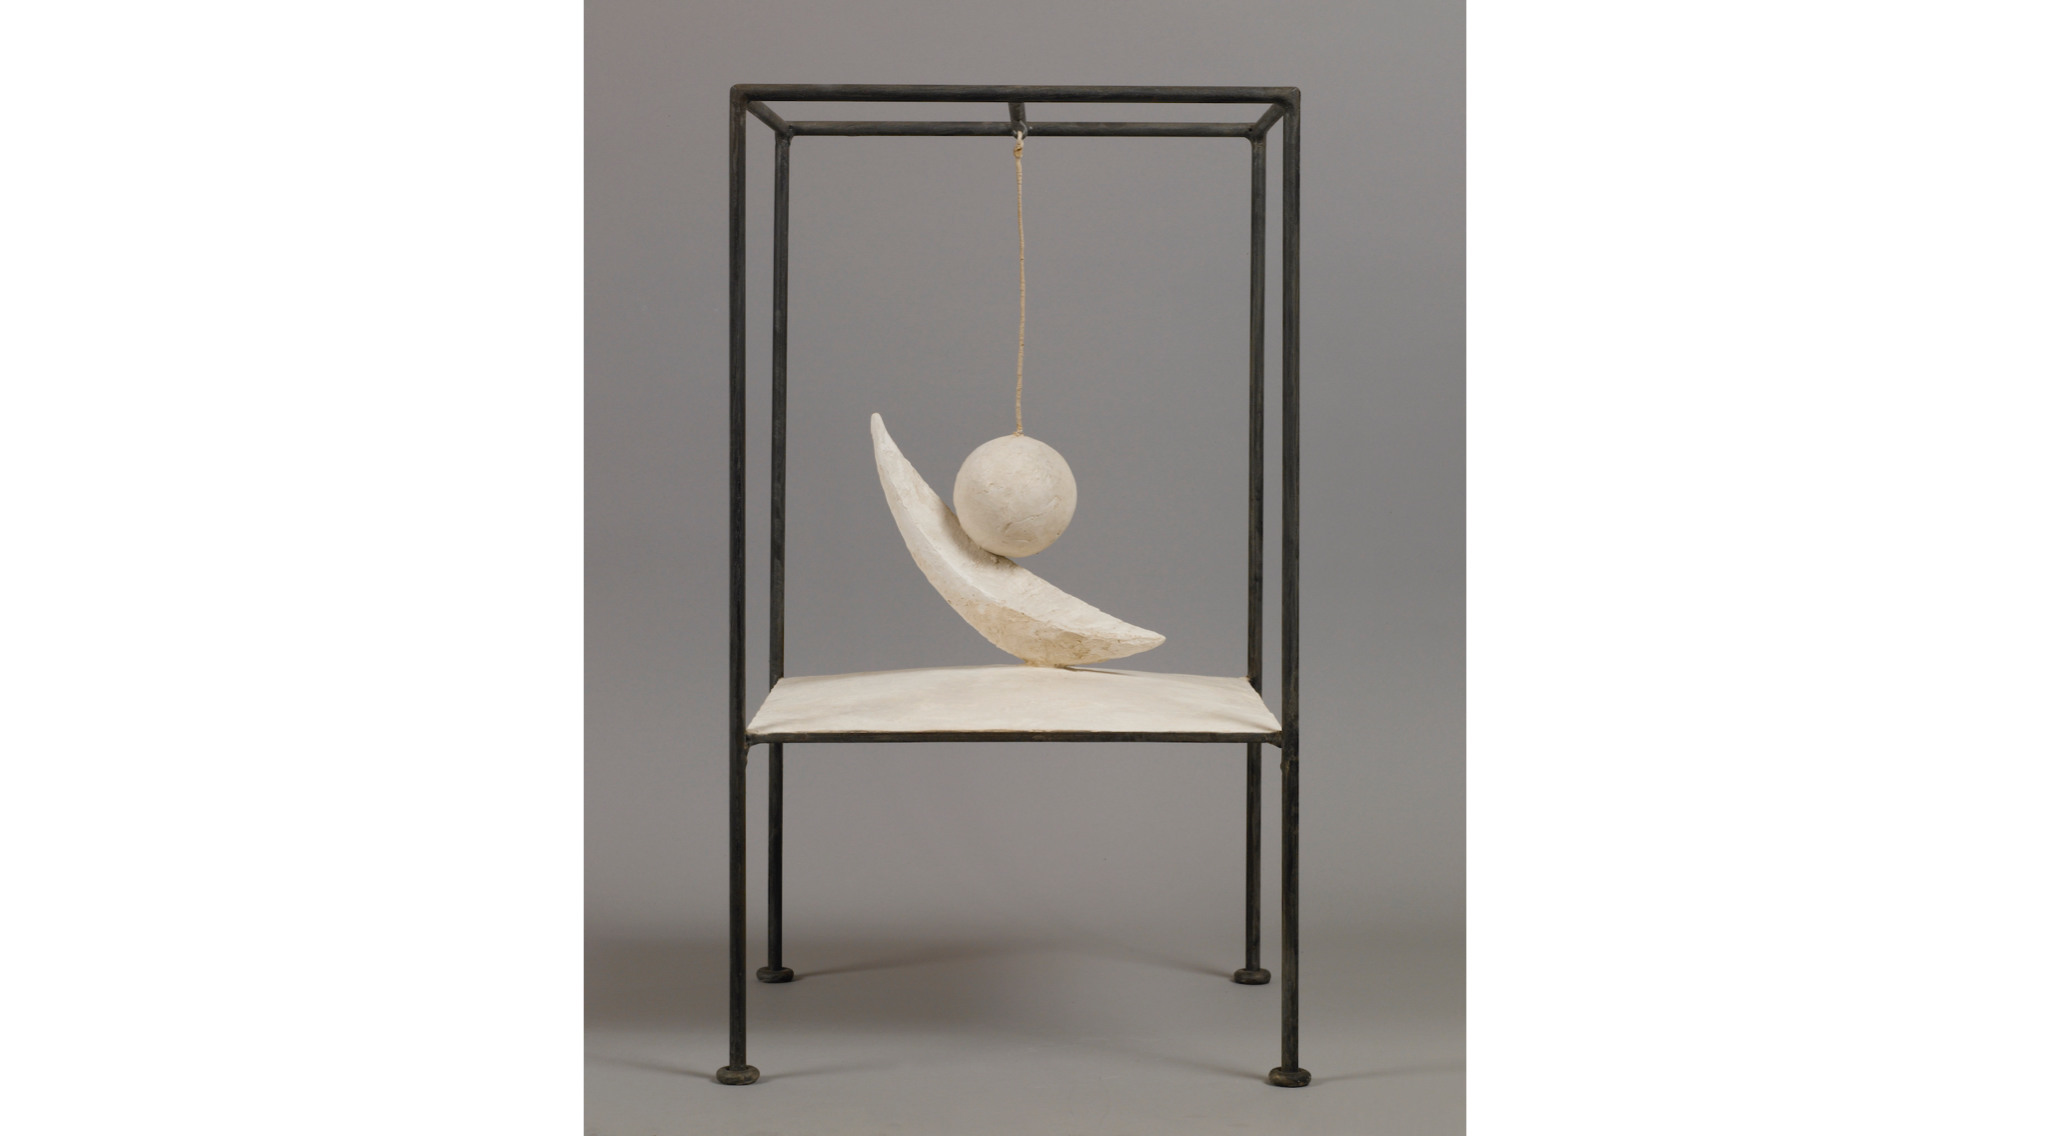 'Suspended Ball', 1930-1931 by Alberto Giacometti